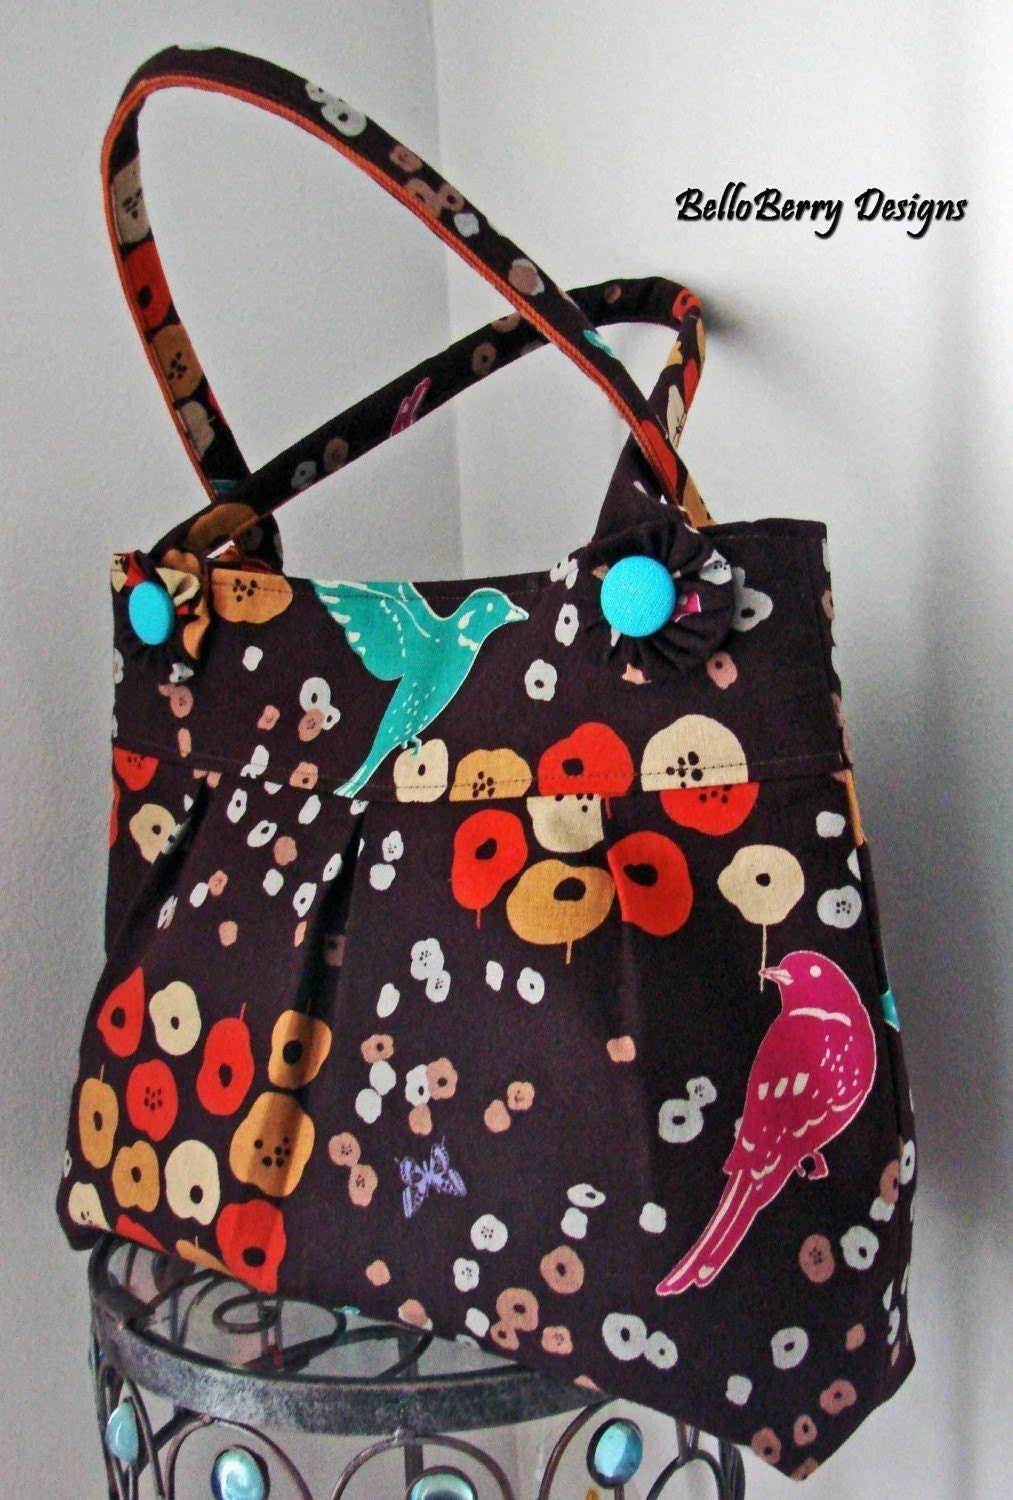 Large Birds and Flowers in Brown - Medium Pleated Bag with 2 Strap Handles and Covered Buttons